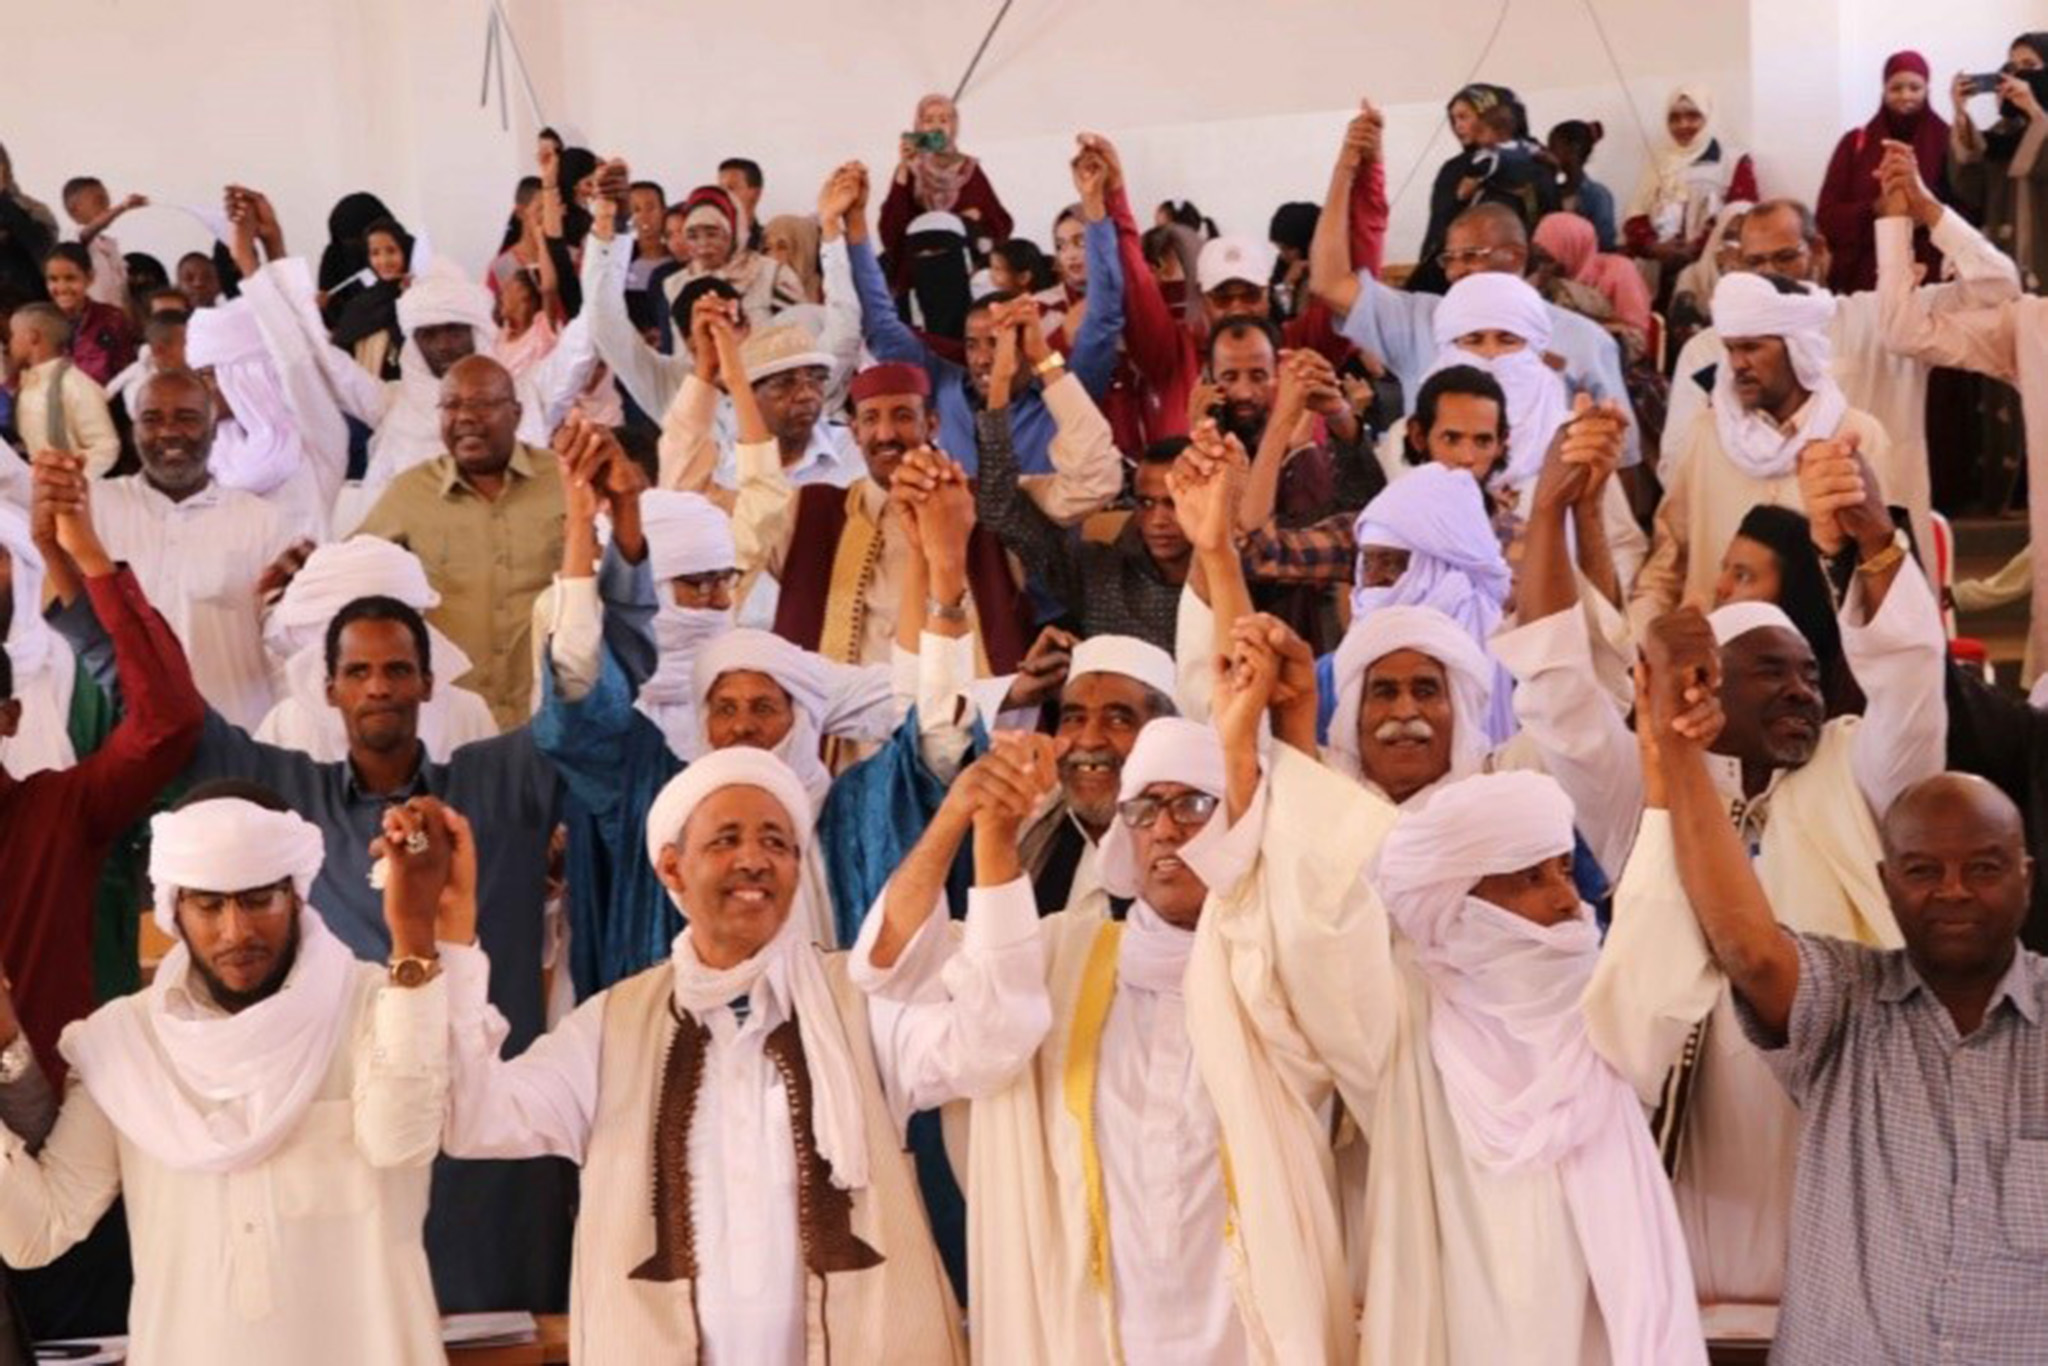 Members of different tribes in Ubari publicly commit to peace on International Peace Day, Ubari, Libya, Sept. 21, 2019.